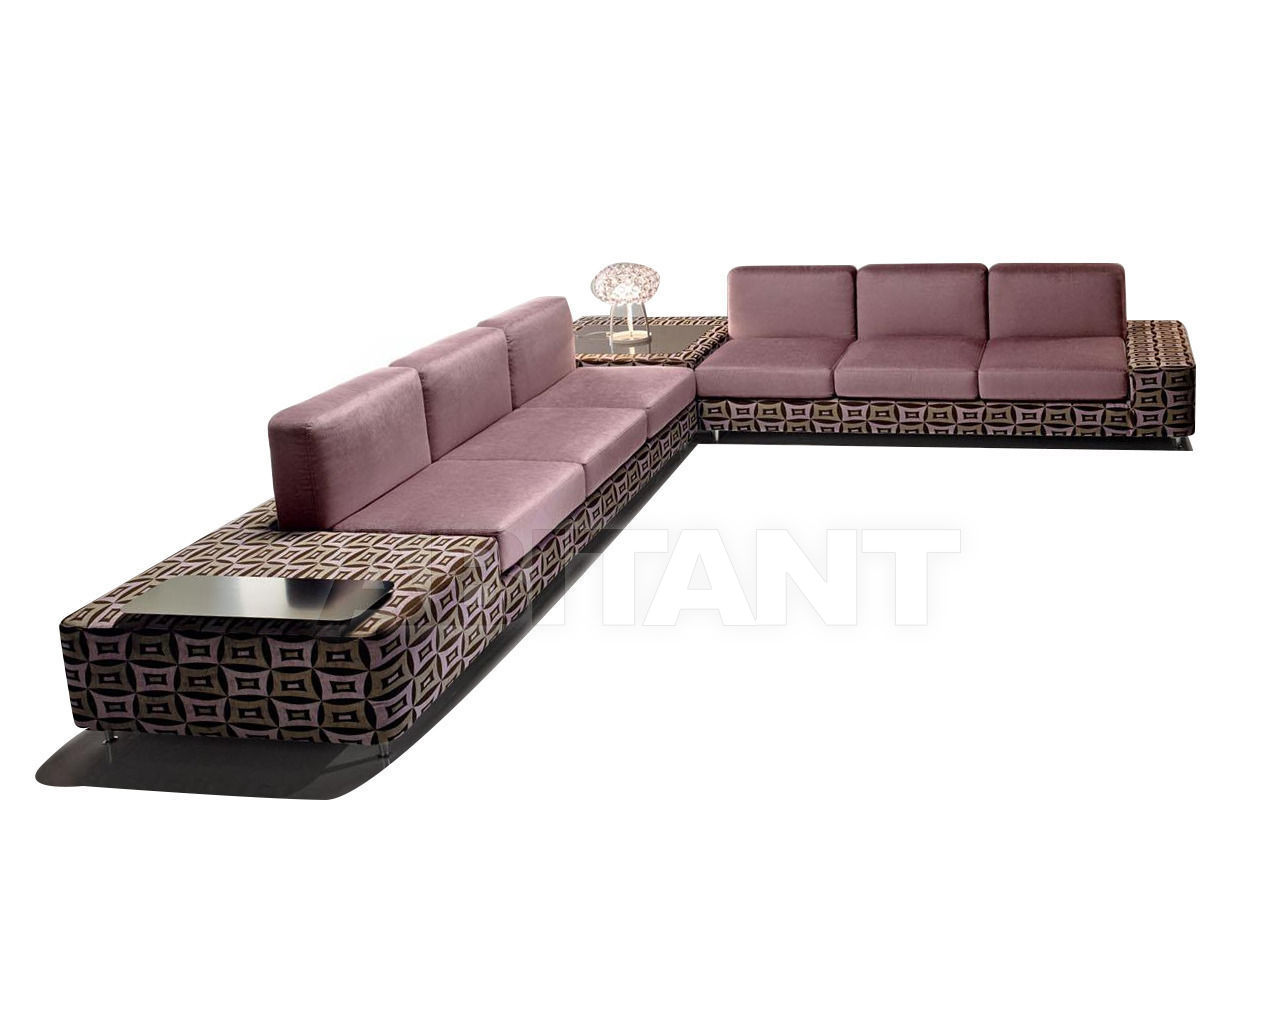 Купить Диван Adrenalina S-bench S-oft Sofa